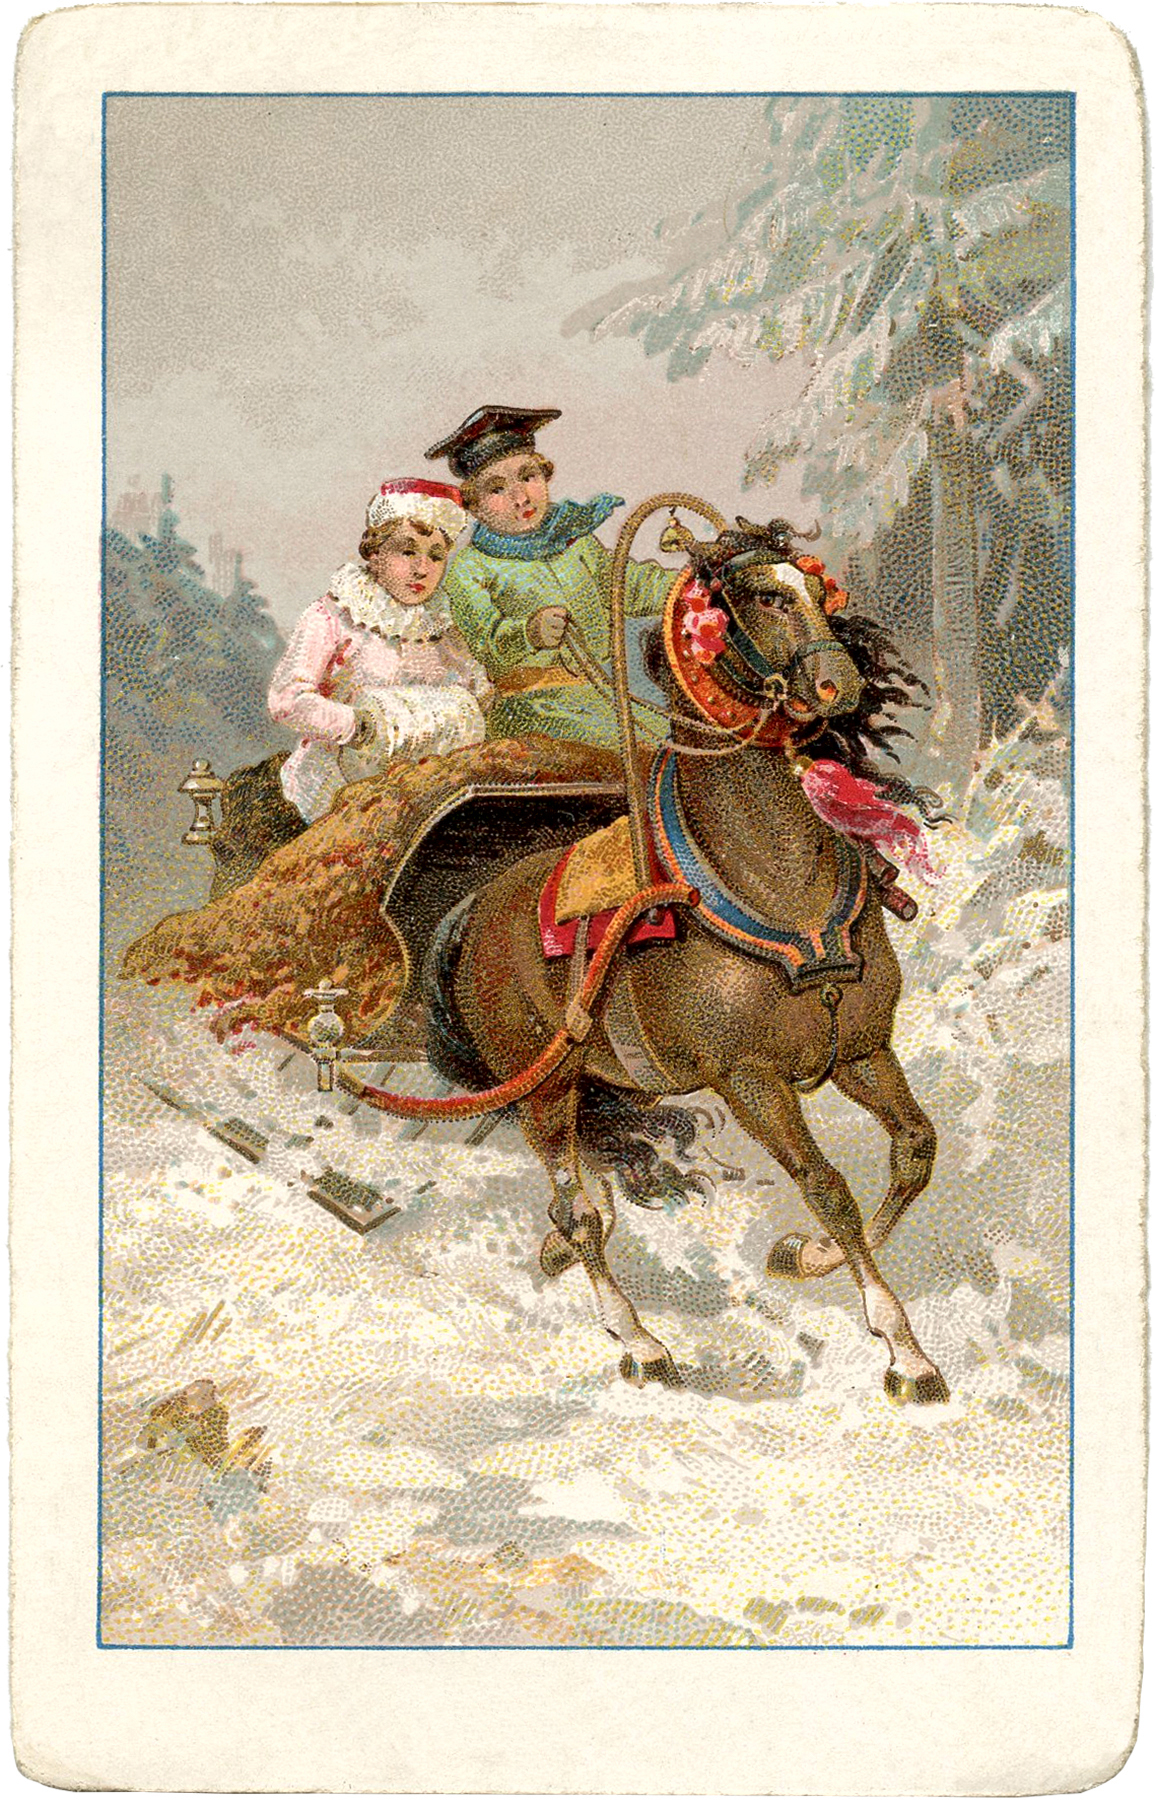 Vintage Sleigh Ride Image The Graphics Fairy